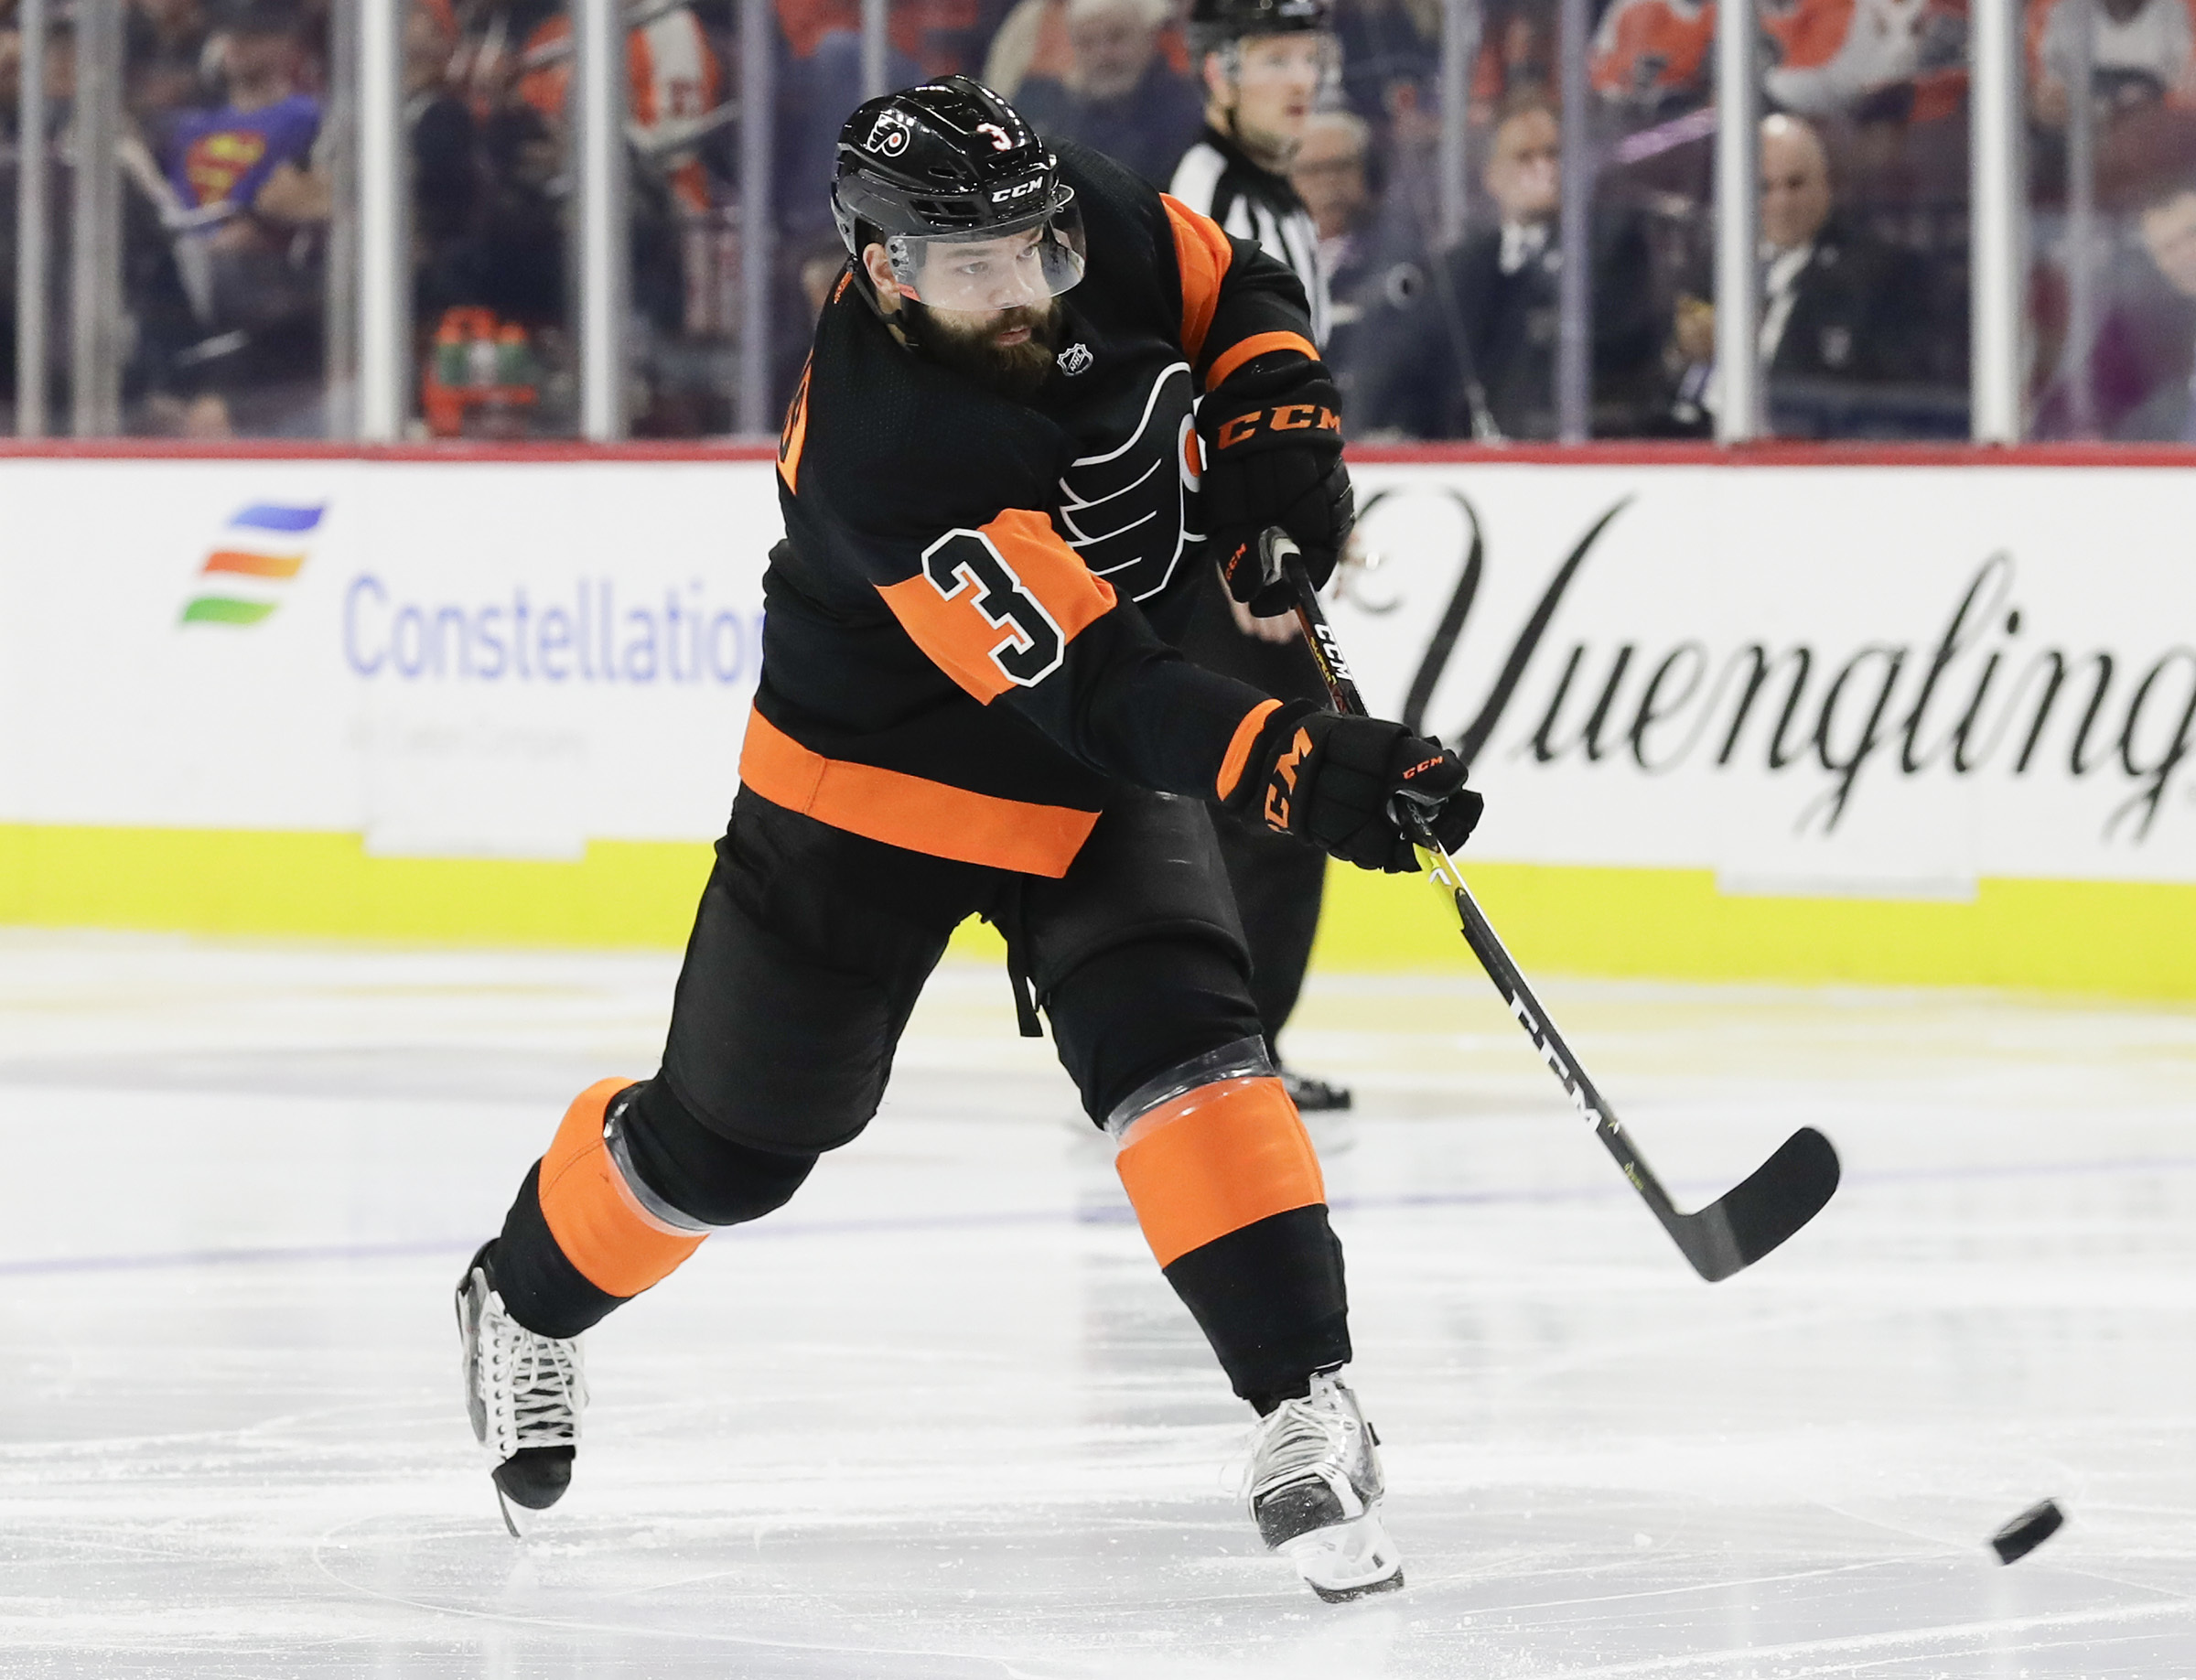 Flyers defenseman Radko Gudas is a plus-5 this season, an indication of his improved play.